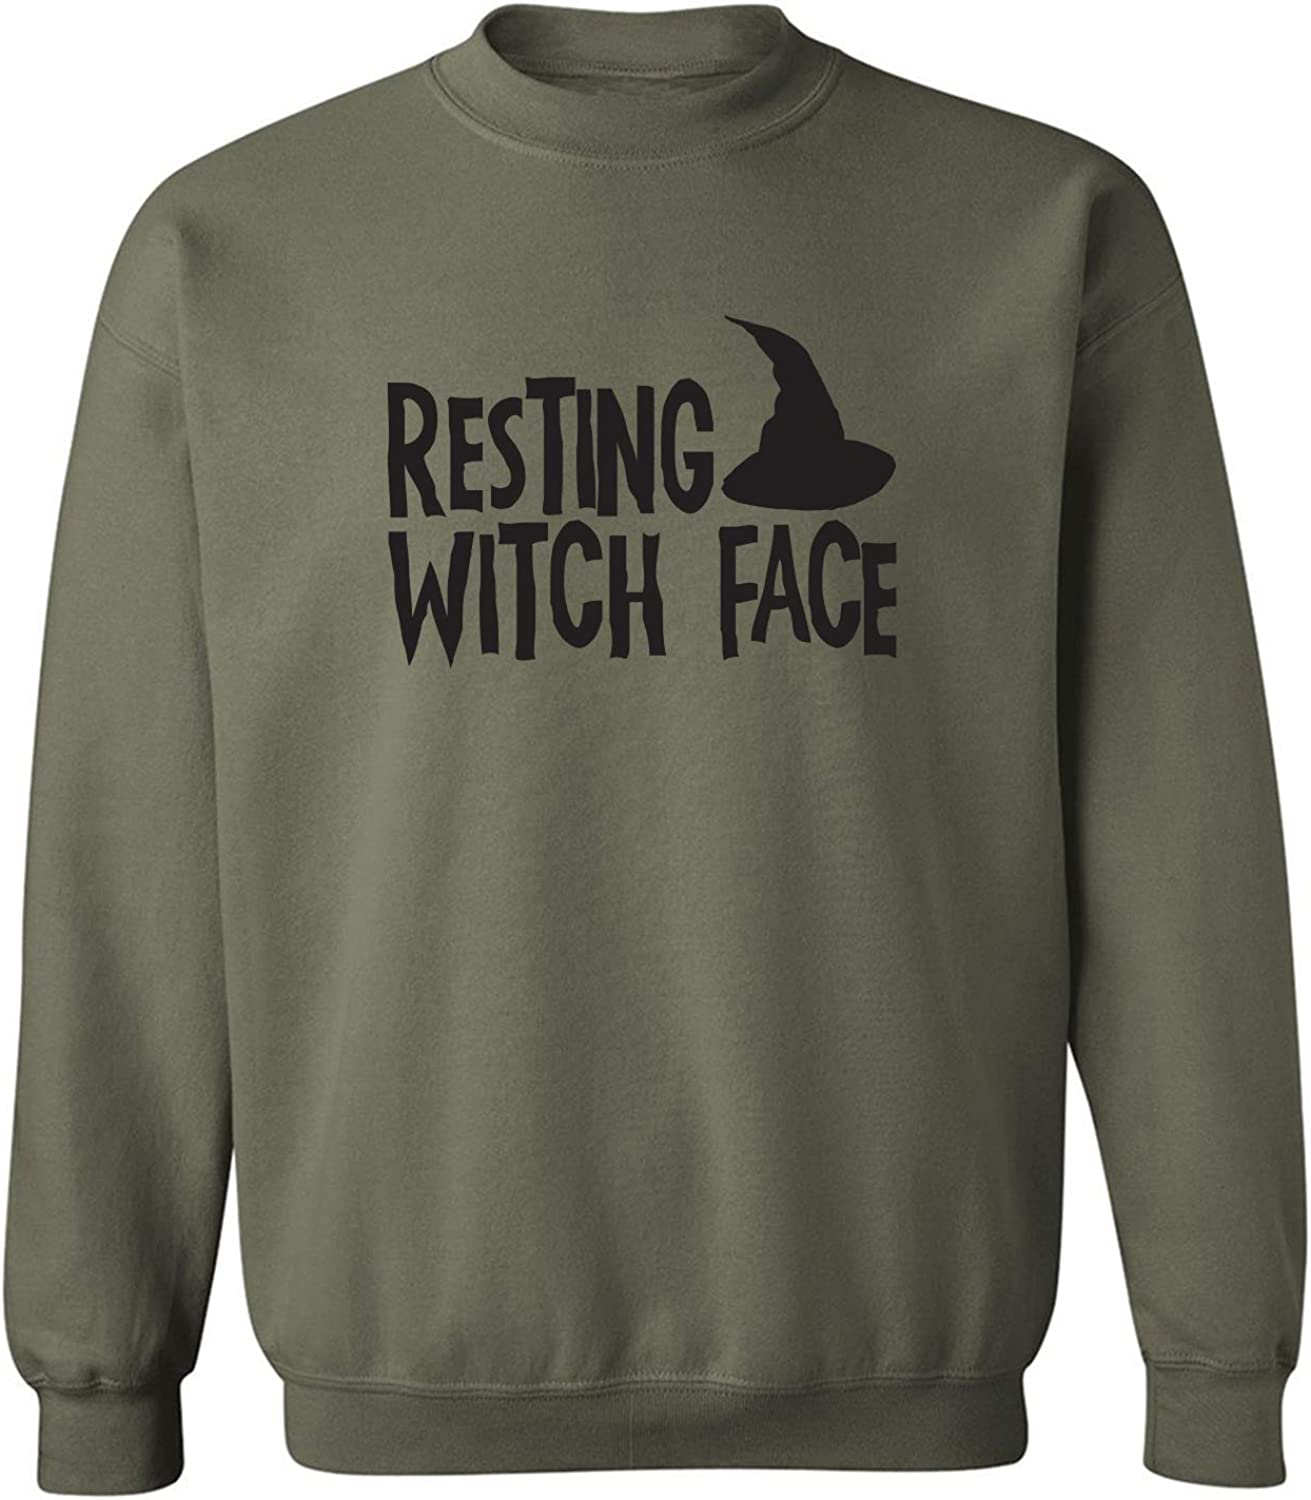 RESTING WITCH FACE (with hat) Crewneck Sweatshirt